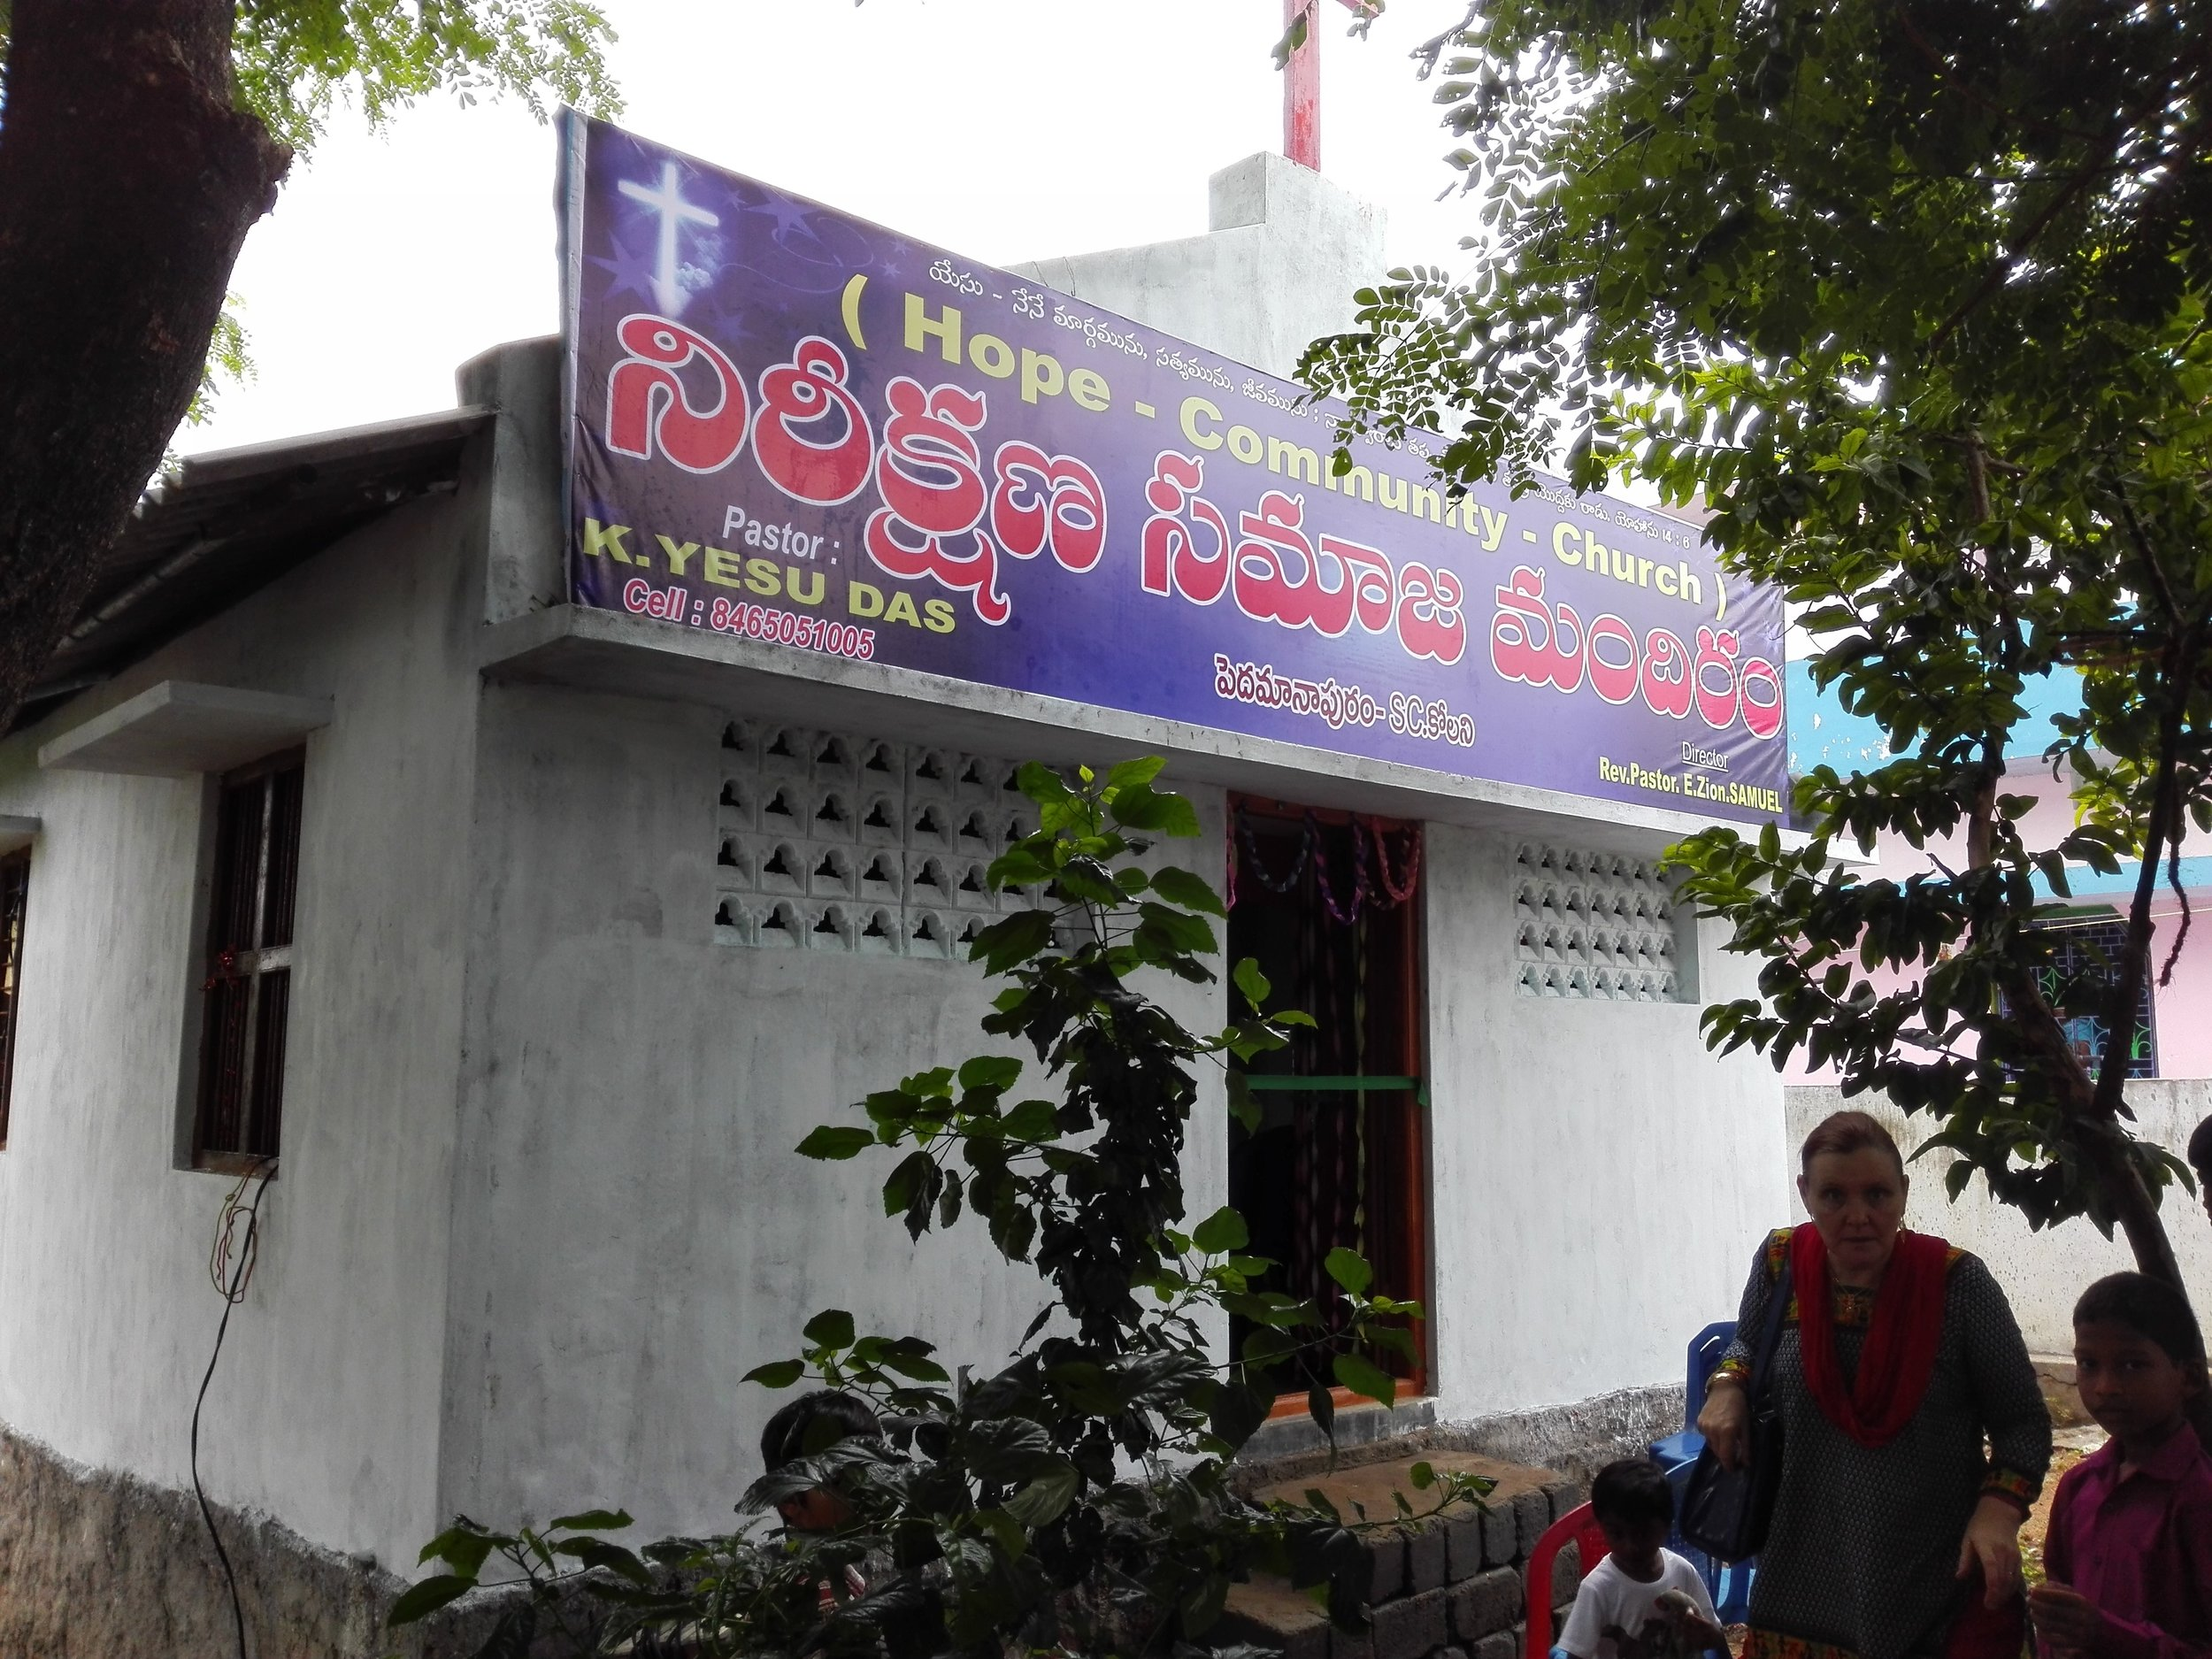 Church build in a rural village by supporters of the ministry